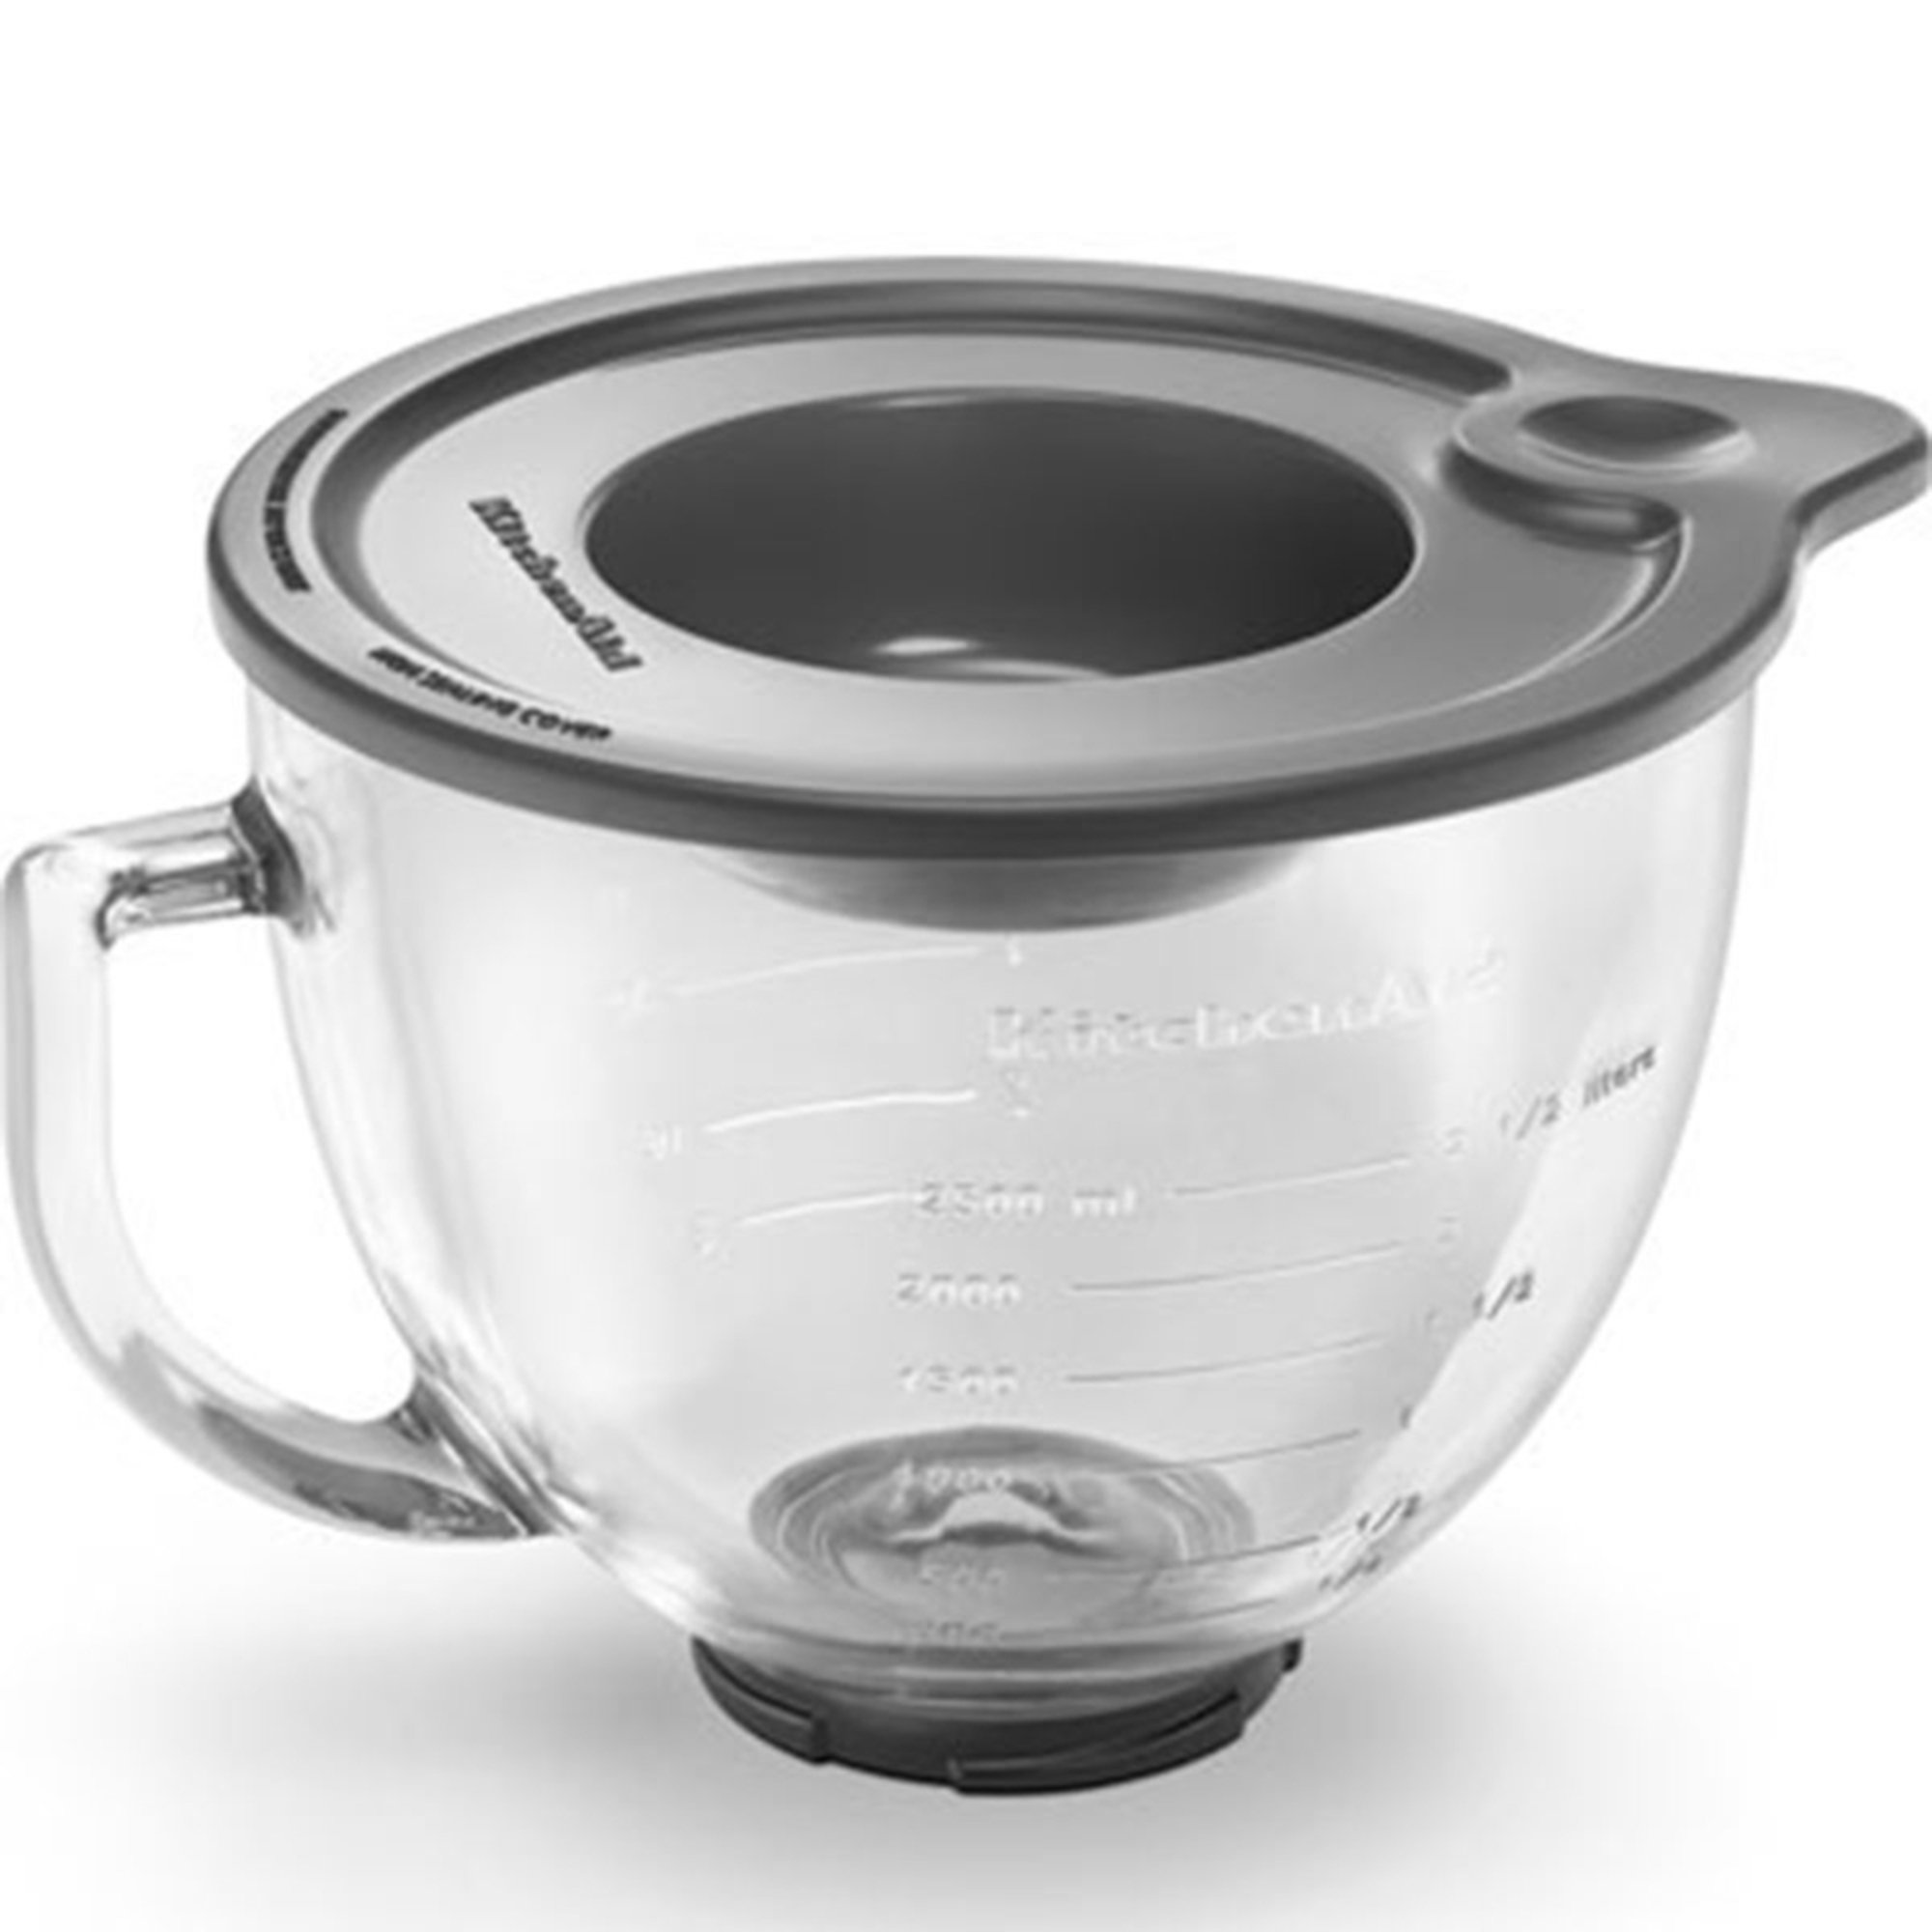 Kitchenaid 5 quart glass mixing measuring bowl for tilt head stand mixer k5gb attachments - Kitchenaid glass bowl attachment ...